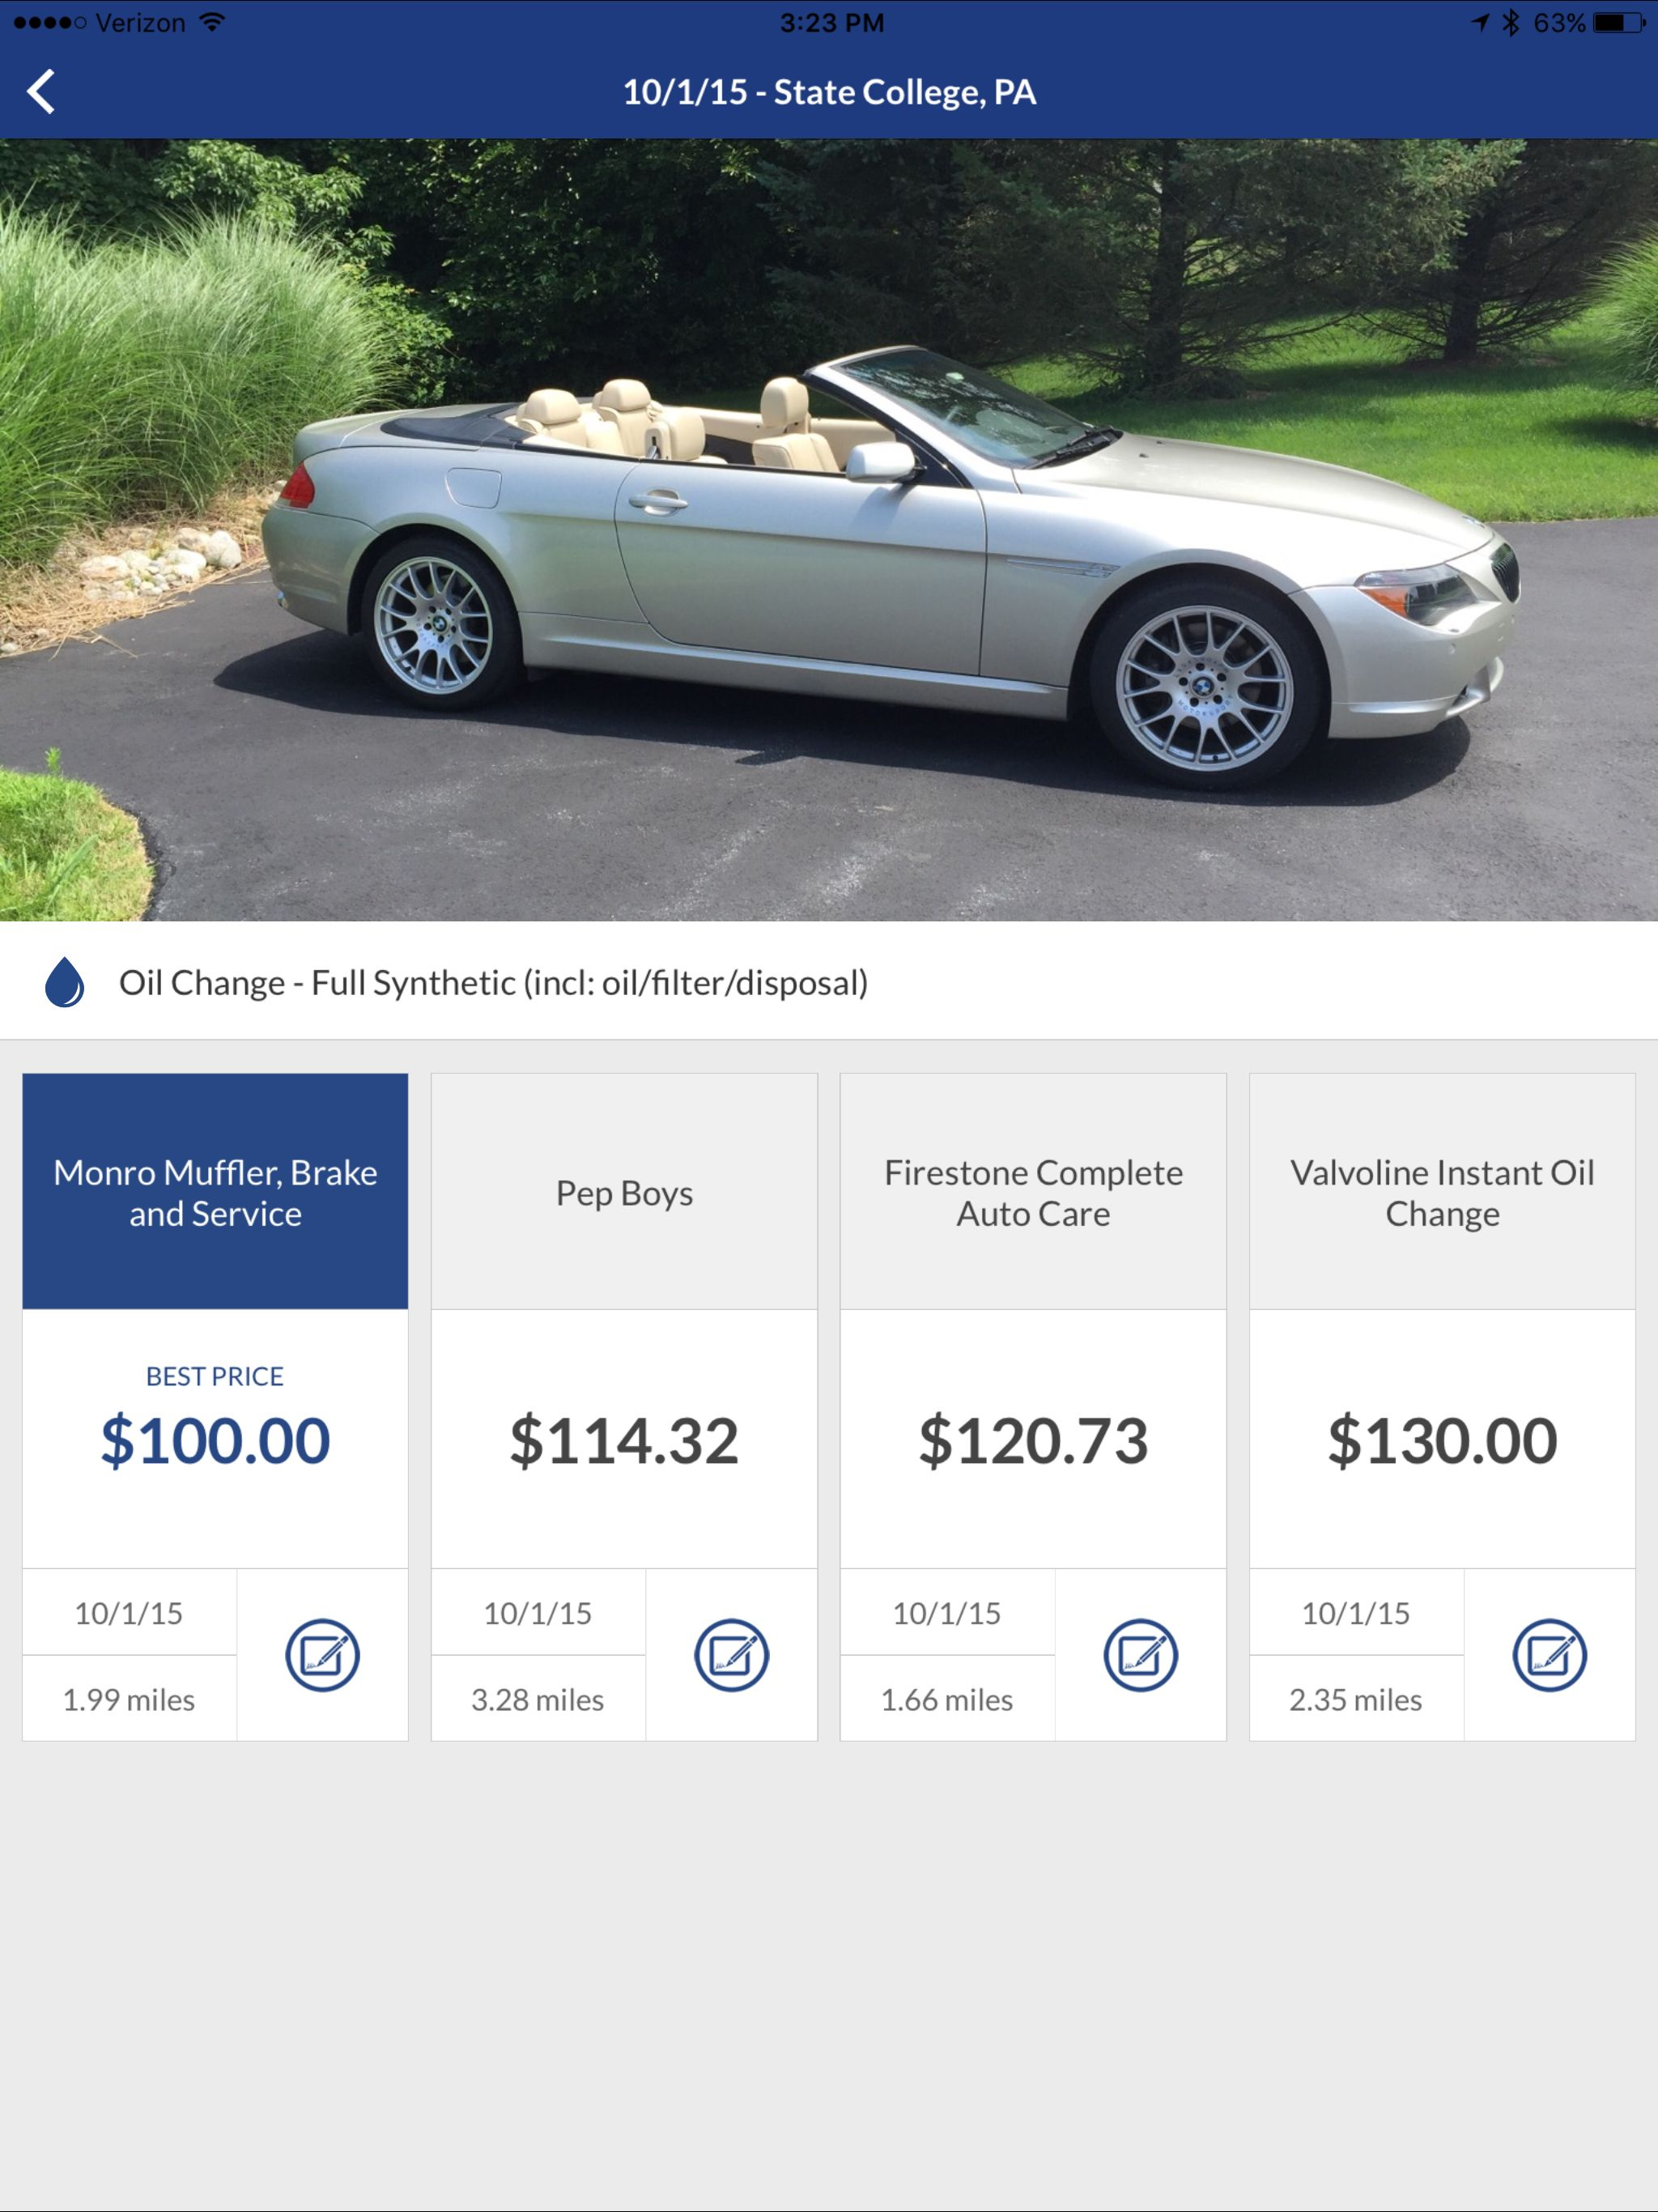 Bmw Quotes Blitzify Price Quote For A Bmw  Blitzify  Pinterest  Price